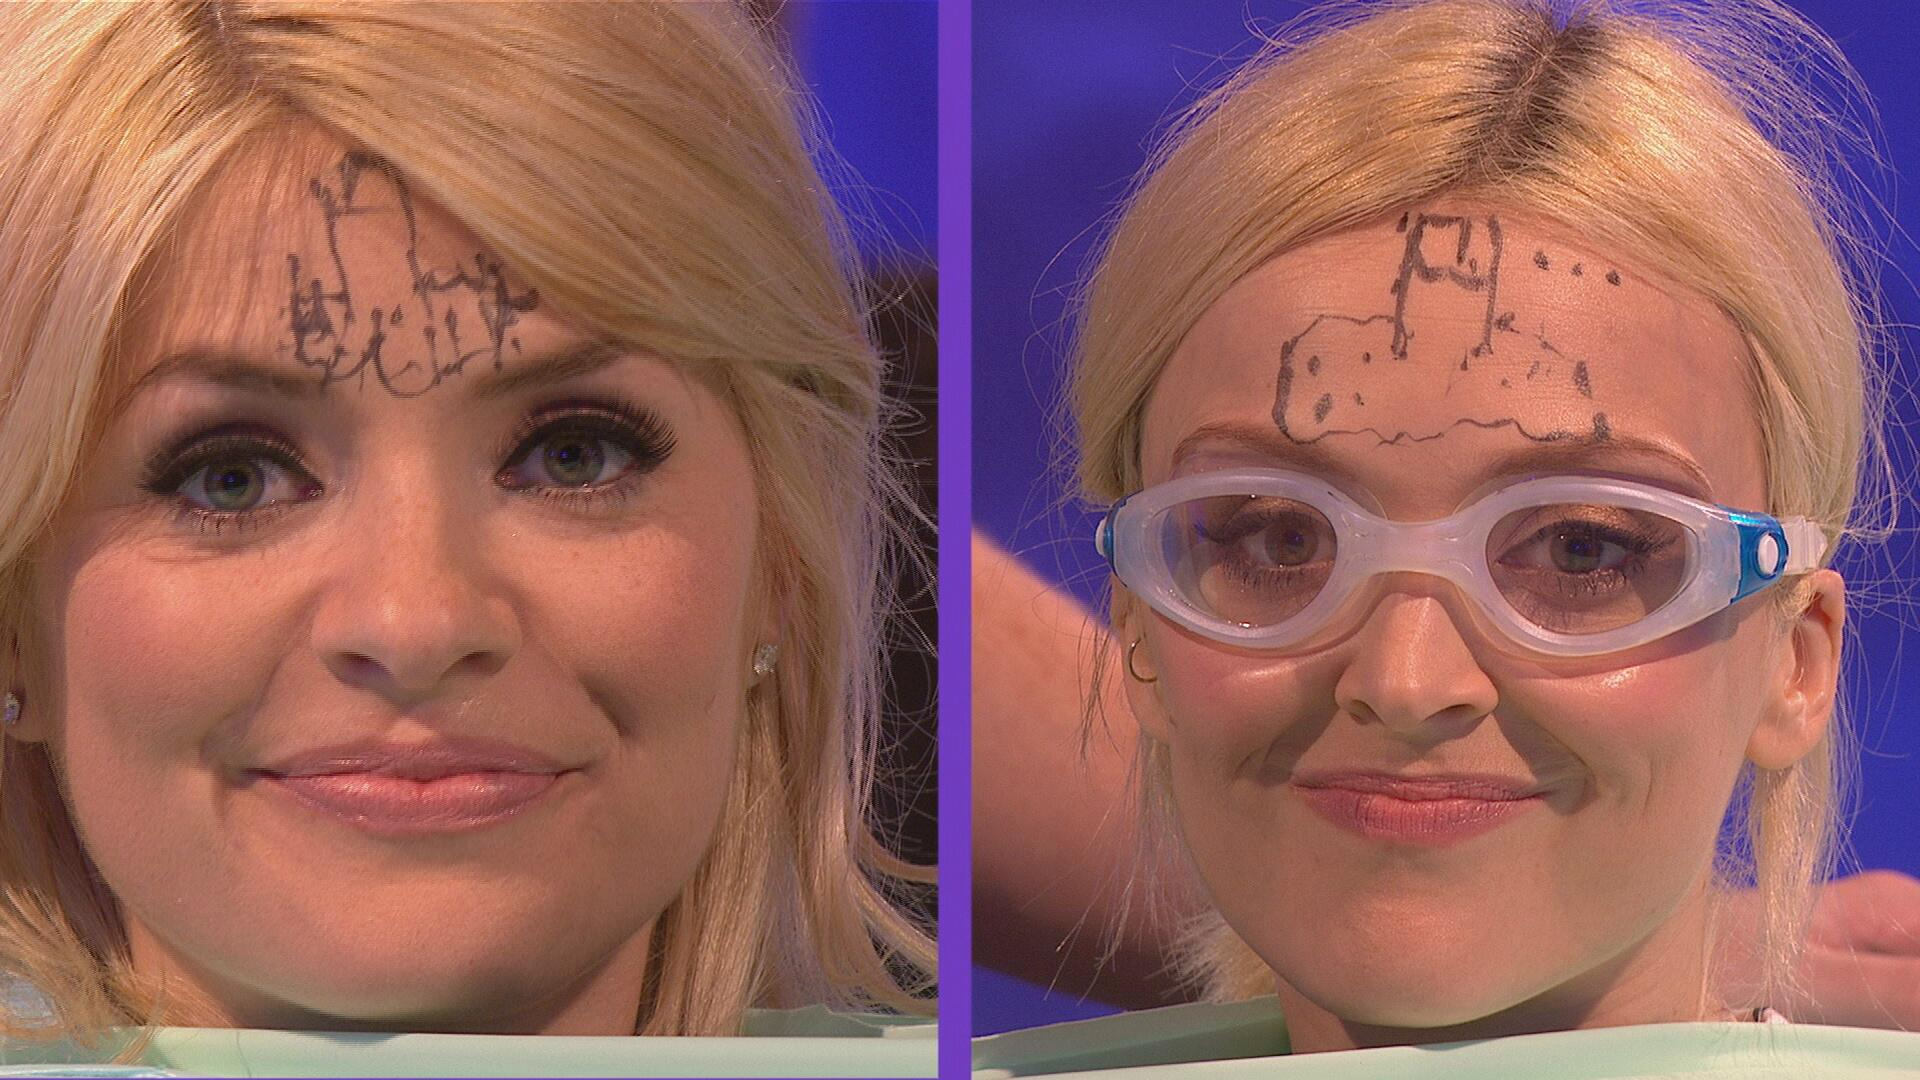 RT @CelebJuice: Here's a little taster of what @HollyWills and @Fearnecotton get up to tonight! #YouveGotSomethingOnYourFace http://t.co/FI…